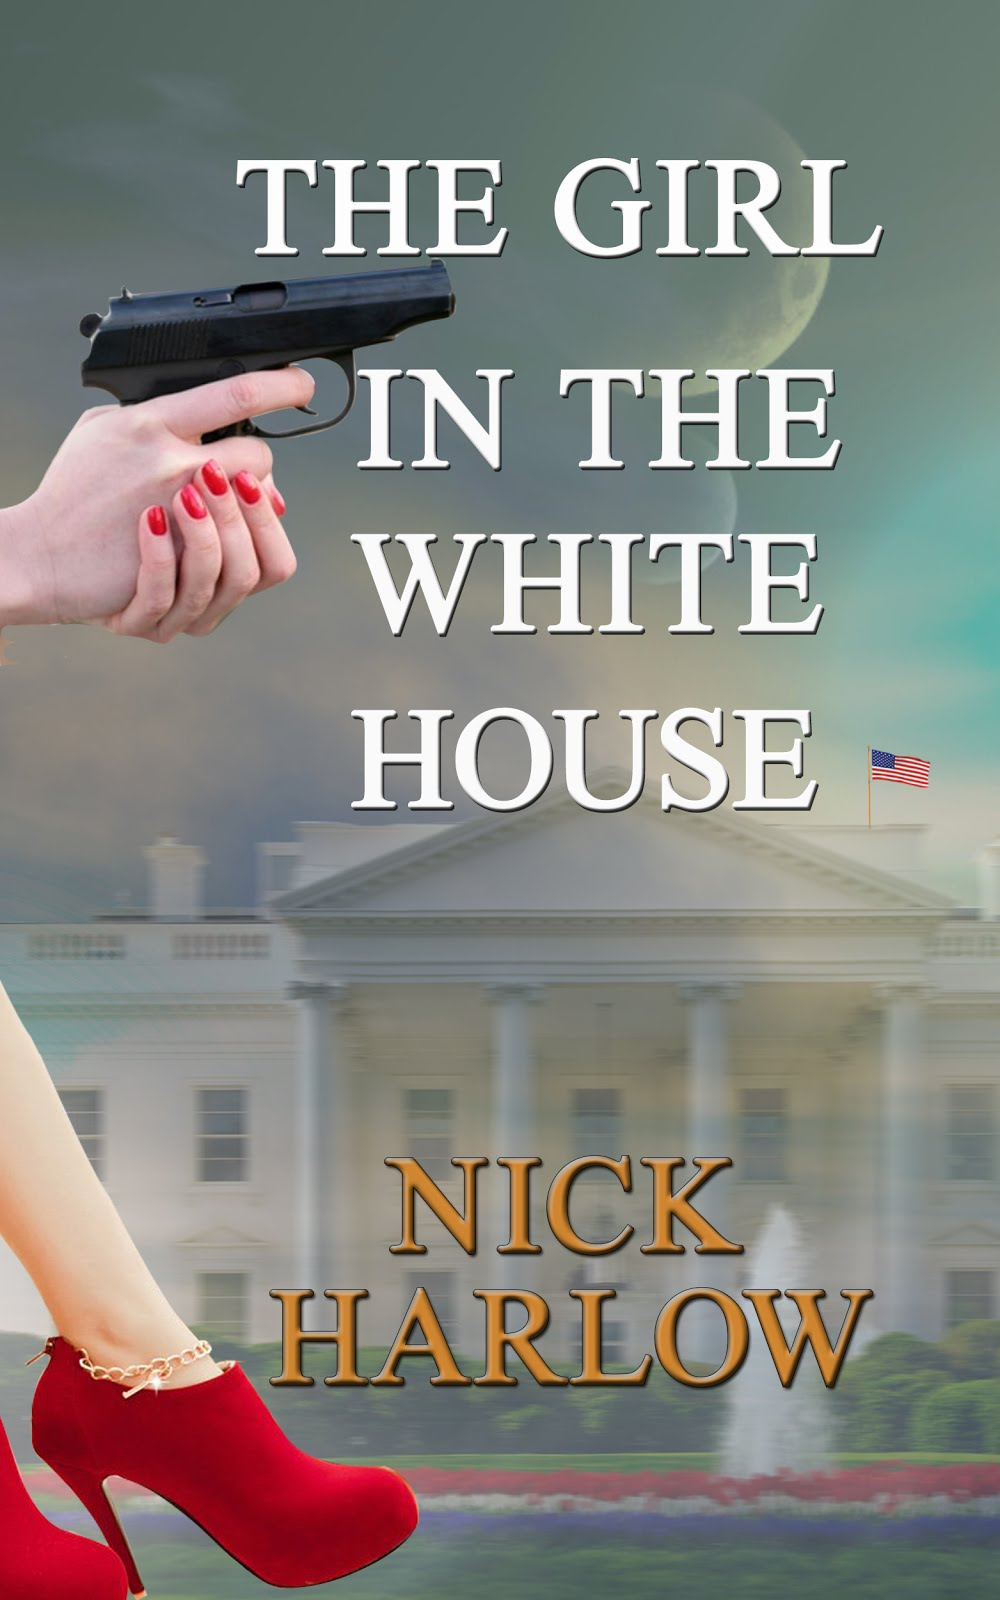 THE GIRL IN THE WHITE HOUSE